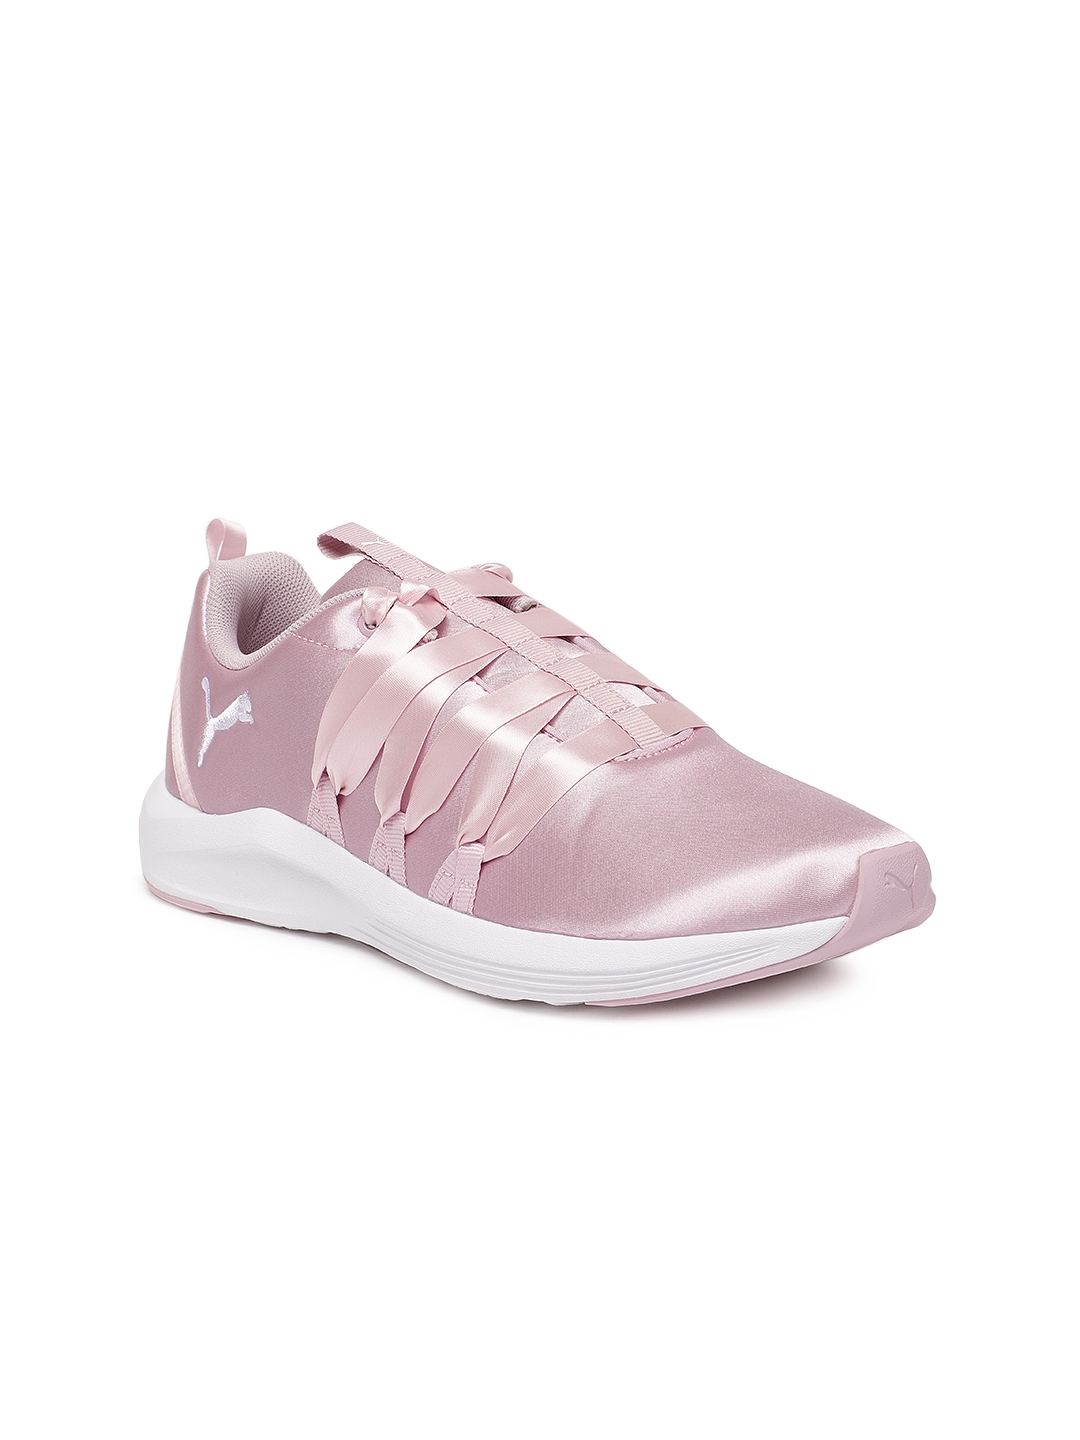 45a429559bb2 Buy Puma Women Pink Prowl Alt Satin Wn s Training Shoes - Sports ...